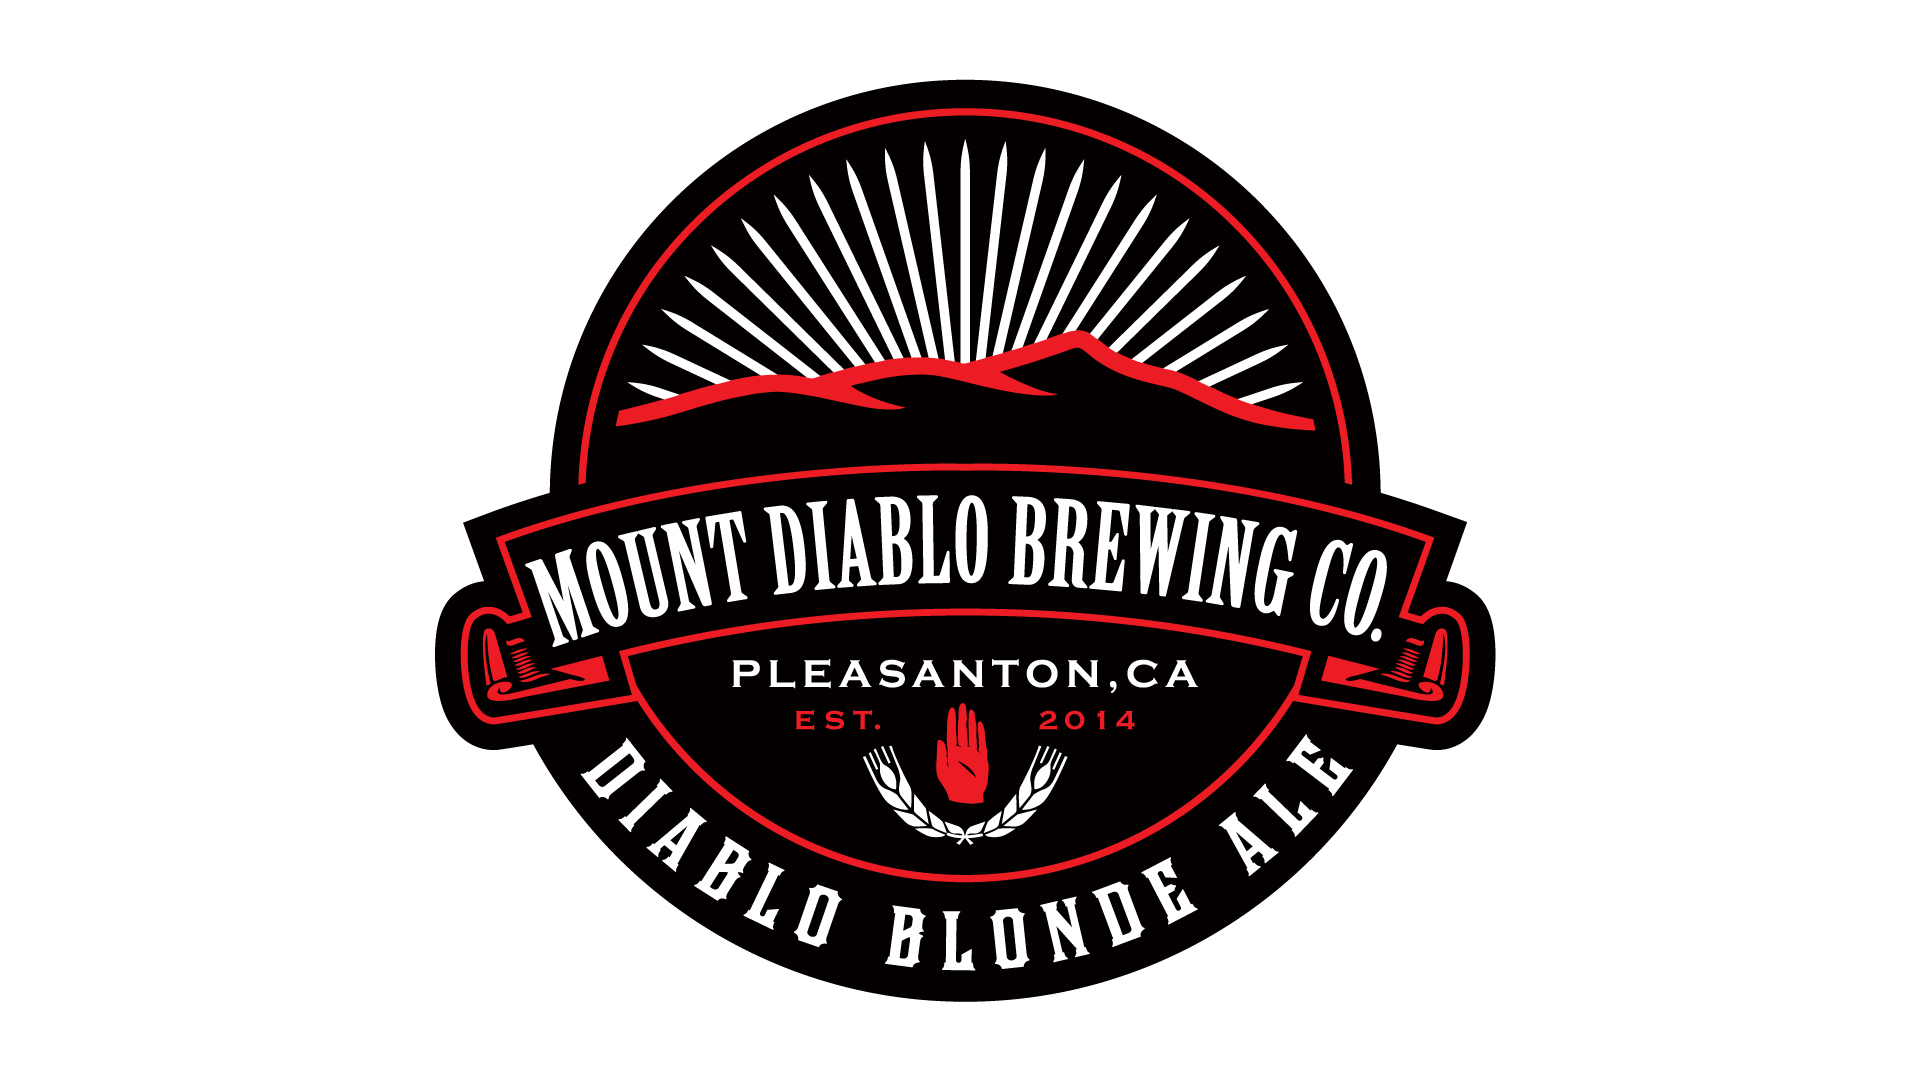 Diablo Blonde Ale - Brewed to style with very low bitterness and hop flavor. Bright, easy drinking beer with a creamy white head and smooth malt finish.5.0% ABV | 22 IBU